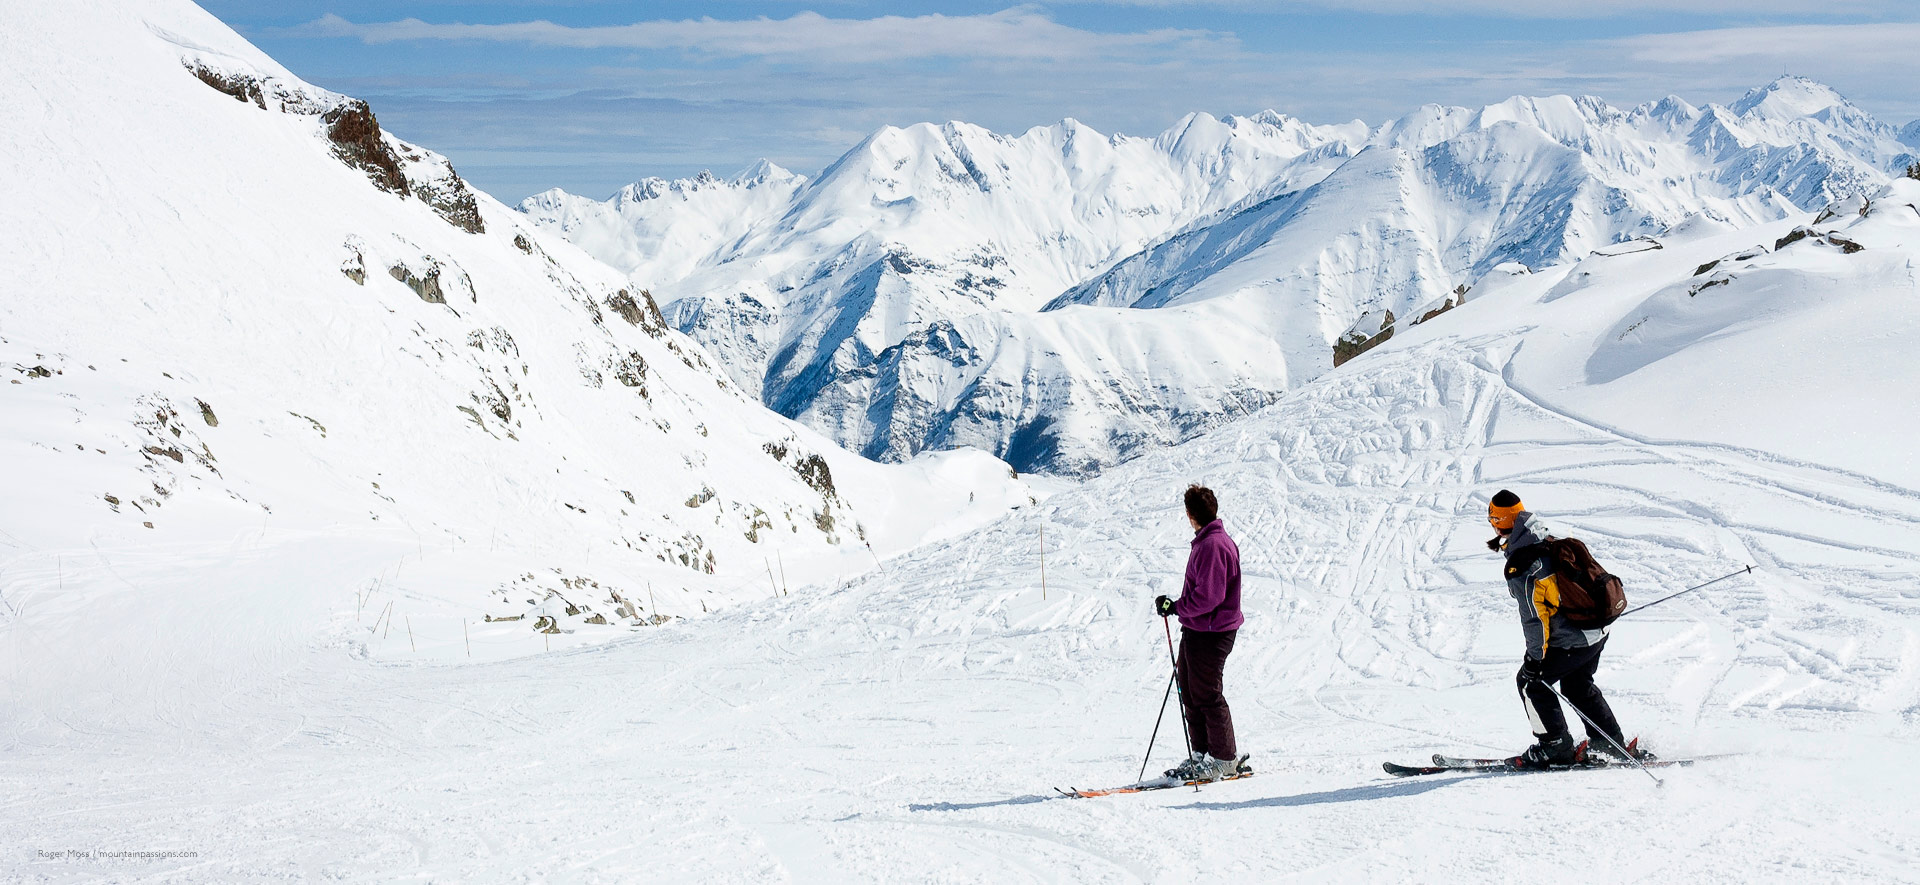 Two skiers on high altitude piste with big mountain views